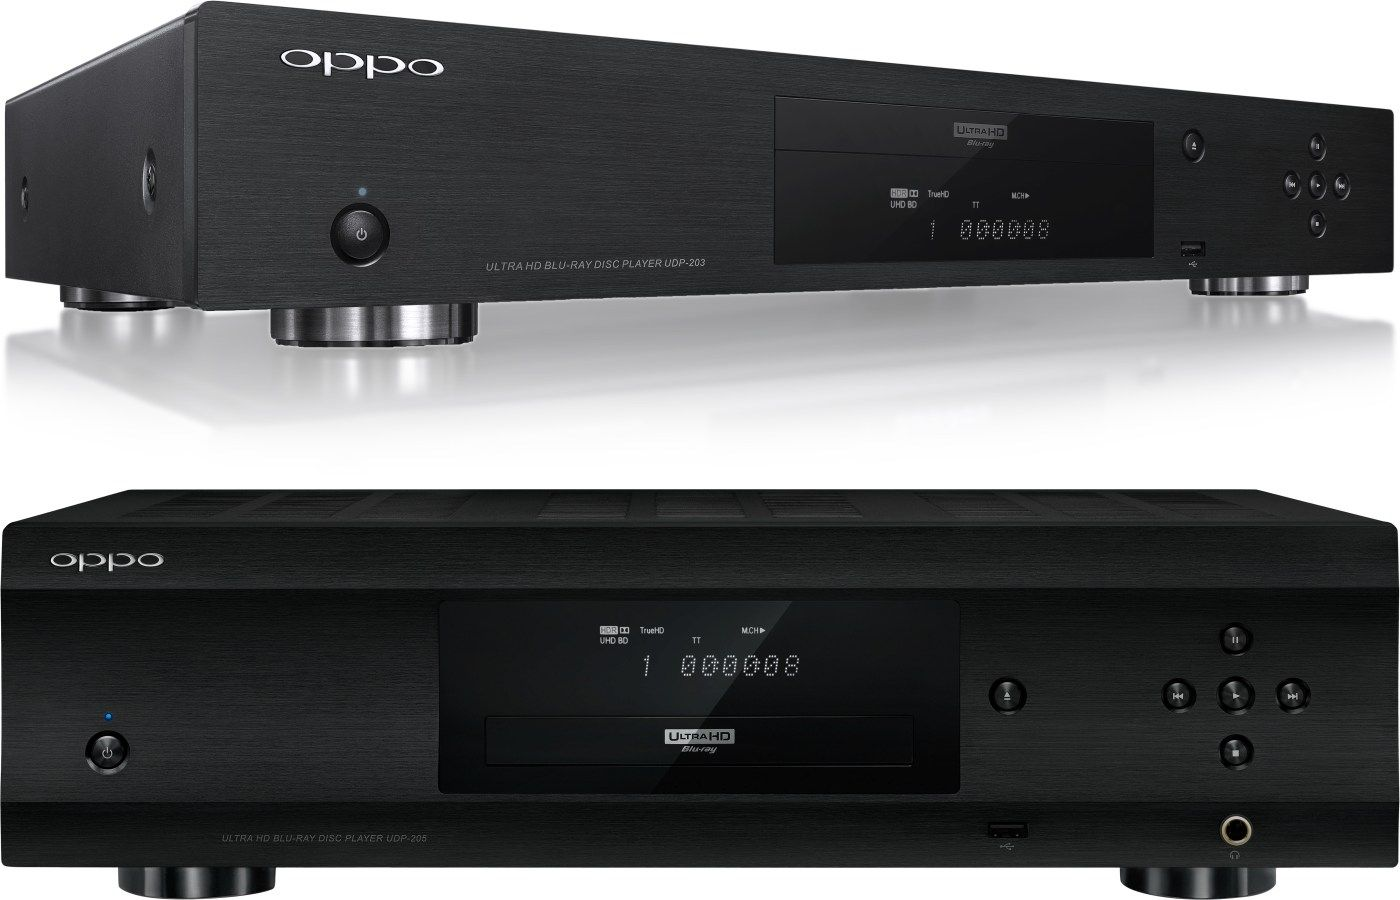 Oppo S 4k Blu Ray Players Are The First With Dolby Vision Hdr Blu Ray Player Blu Ray Audio System